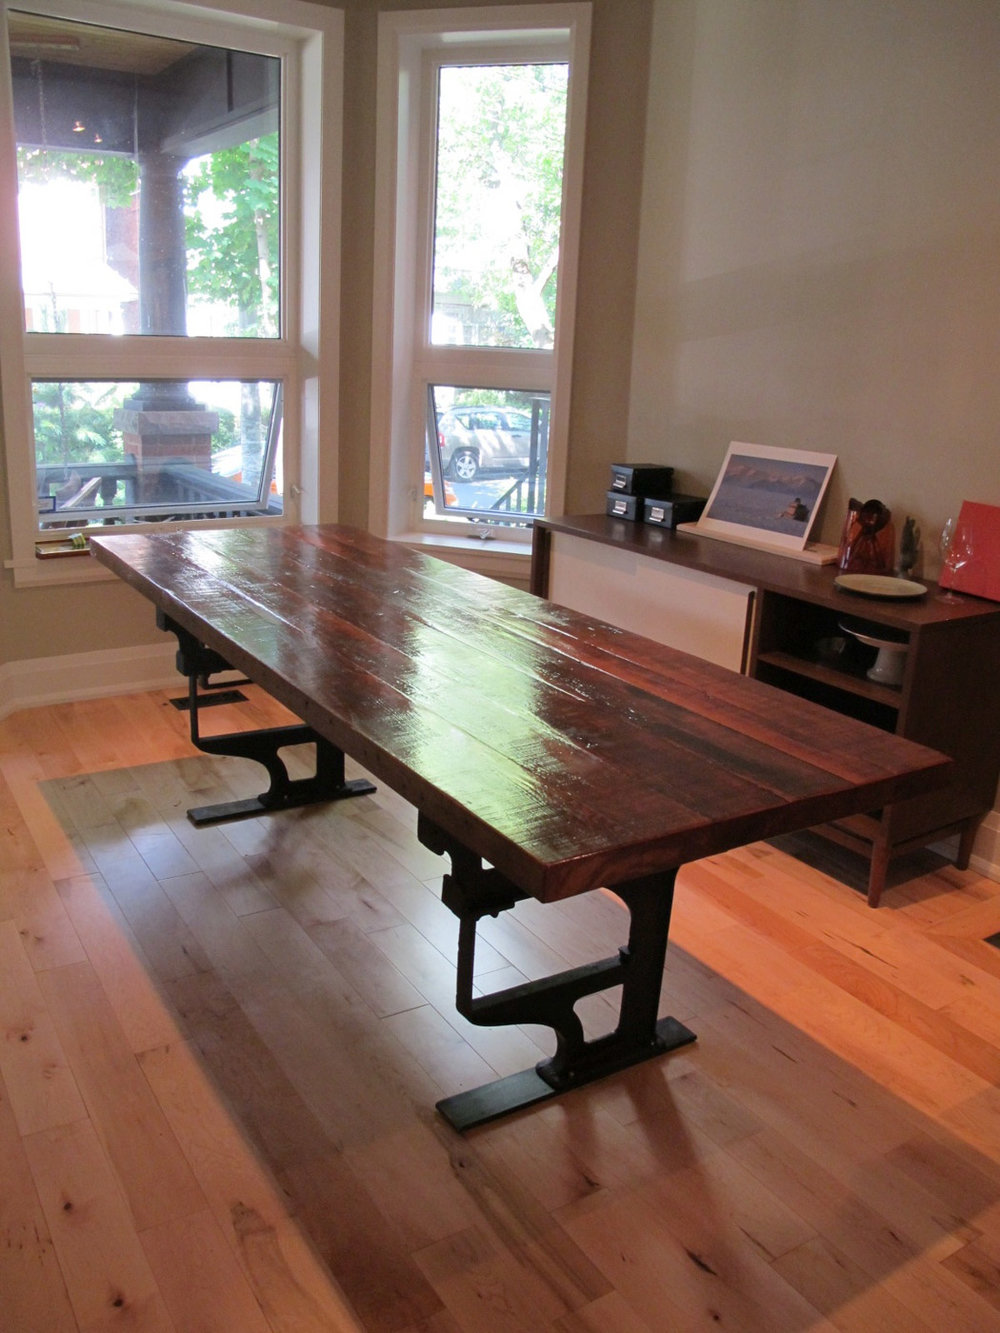 BeReclaimed - Reclaimed Wood Table - Southern Yellow Pine with Architectural Salvaged Cast Iron Legs - Annex Toronto.jpg